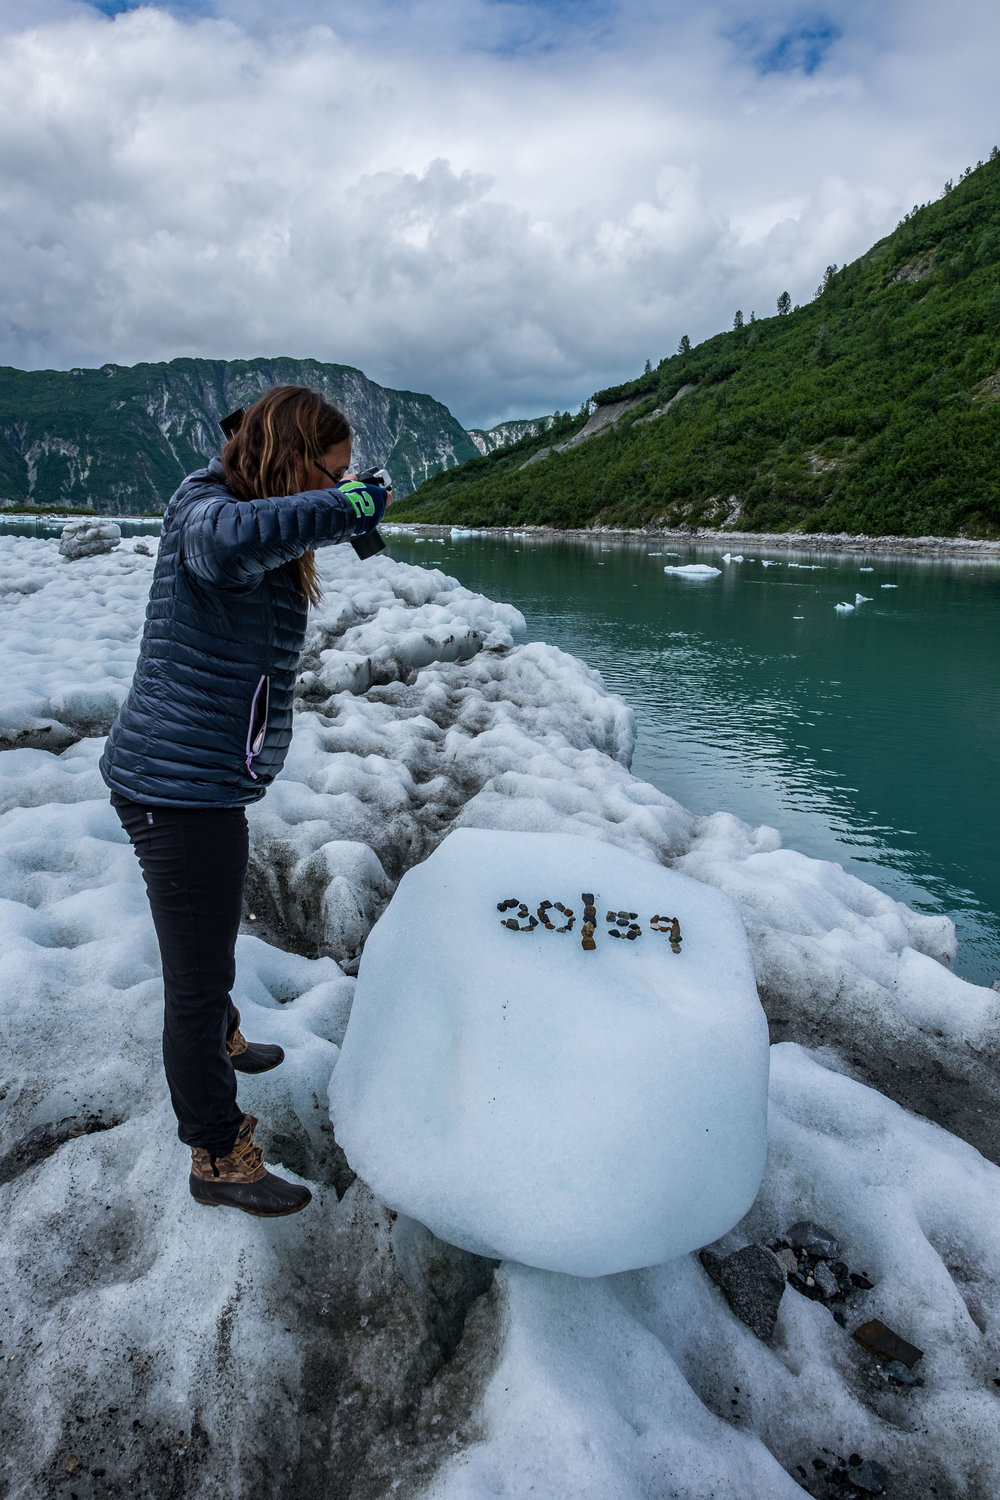 20160630-JI-Glacier Bay National Park-_DSF0405.jpg